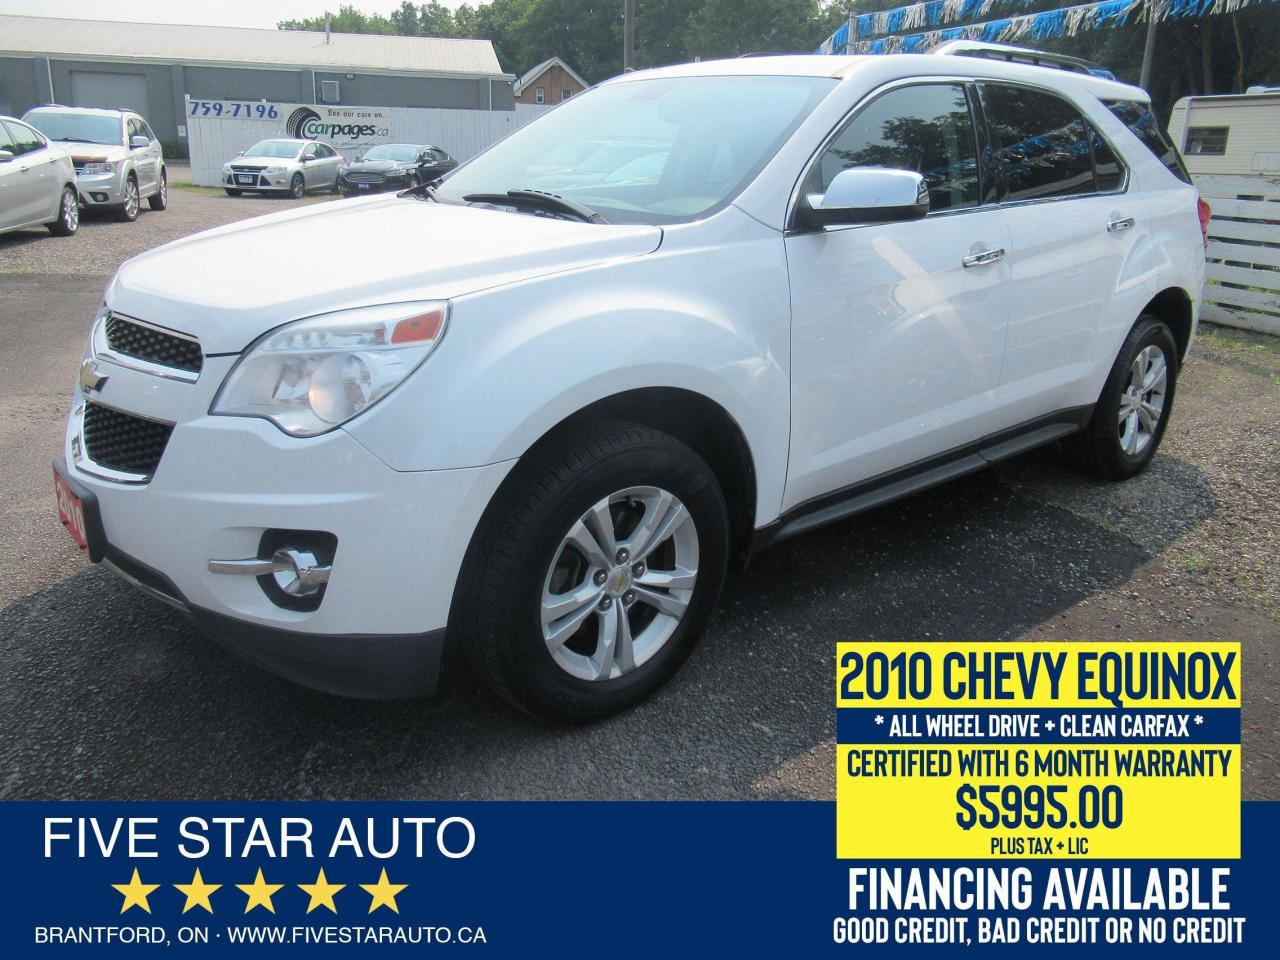 2010 Chevrolet Equinox LT AWD *Clean Carfax* Certified w/ 6 Month Warrant